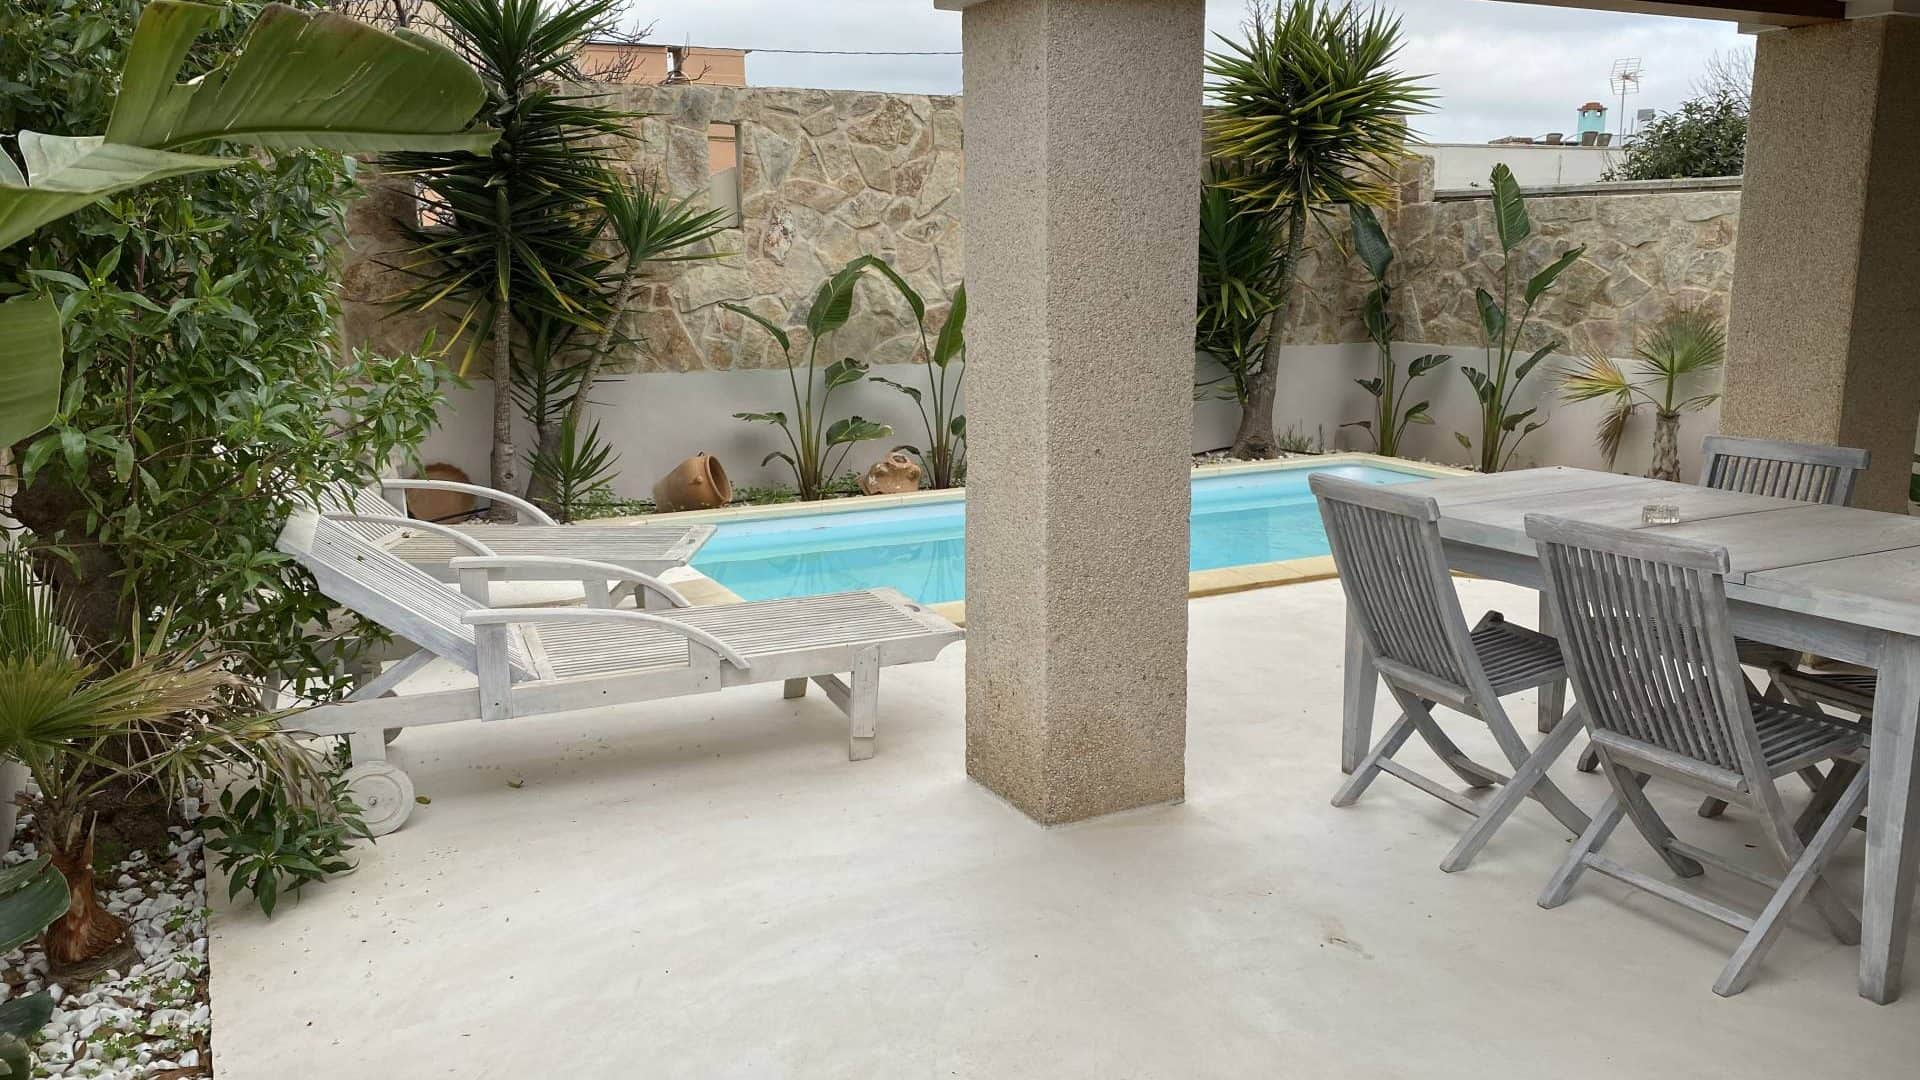 Illa Plana 4 bedroom house for rent with pool